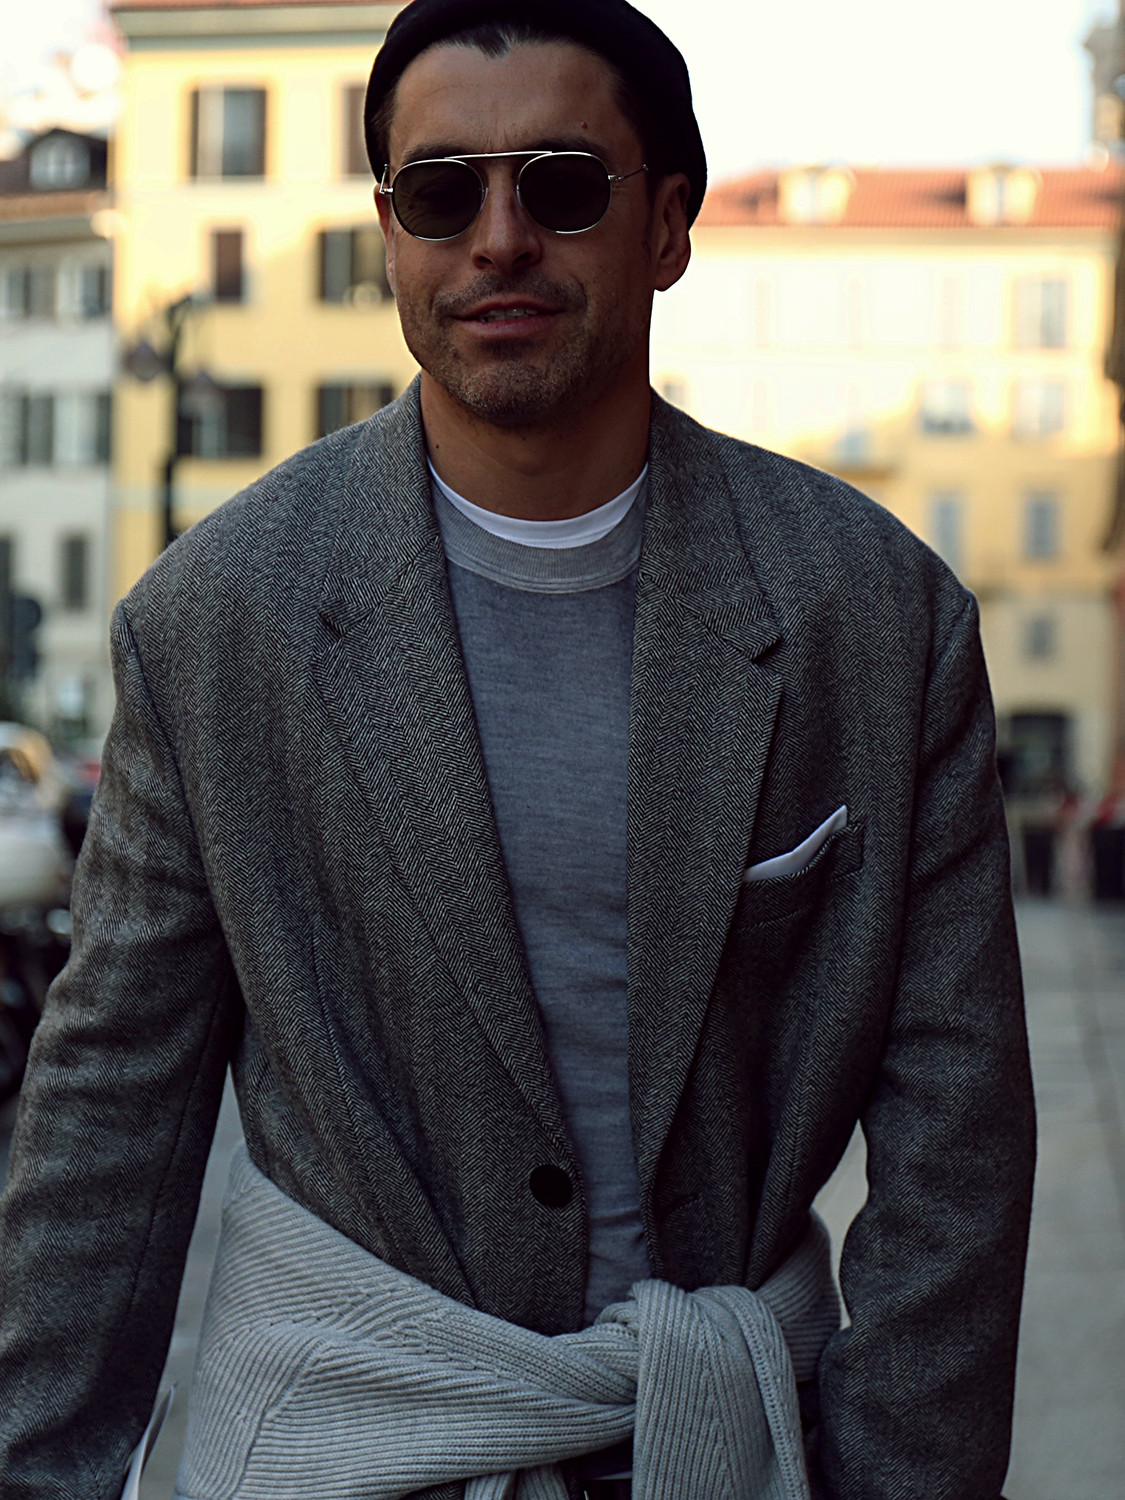 Men's outfit idea for 2021 with grey textured blazer, grey crew neck knitted jumper, white crew neck t-shirt, dark blue jeans, black loafers. Suitable for spring, autumn and winter.